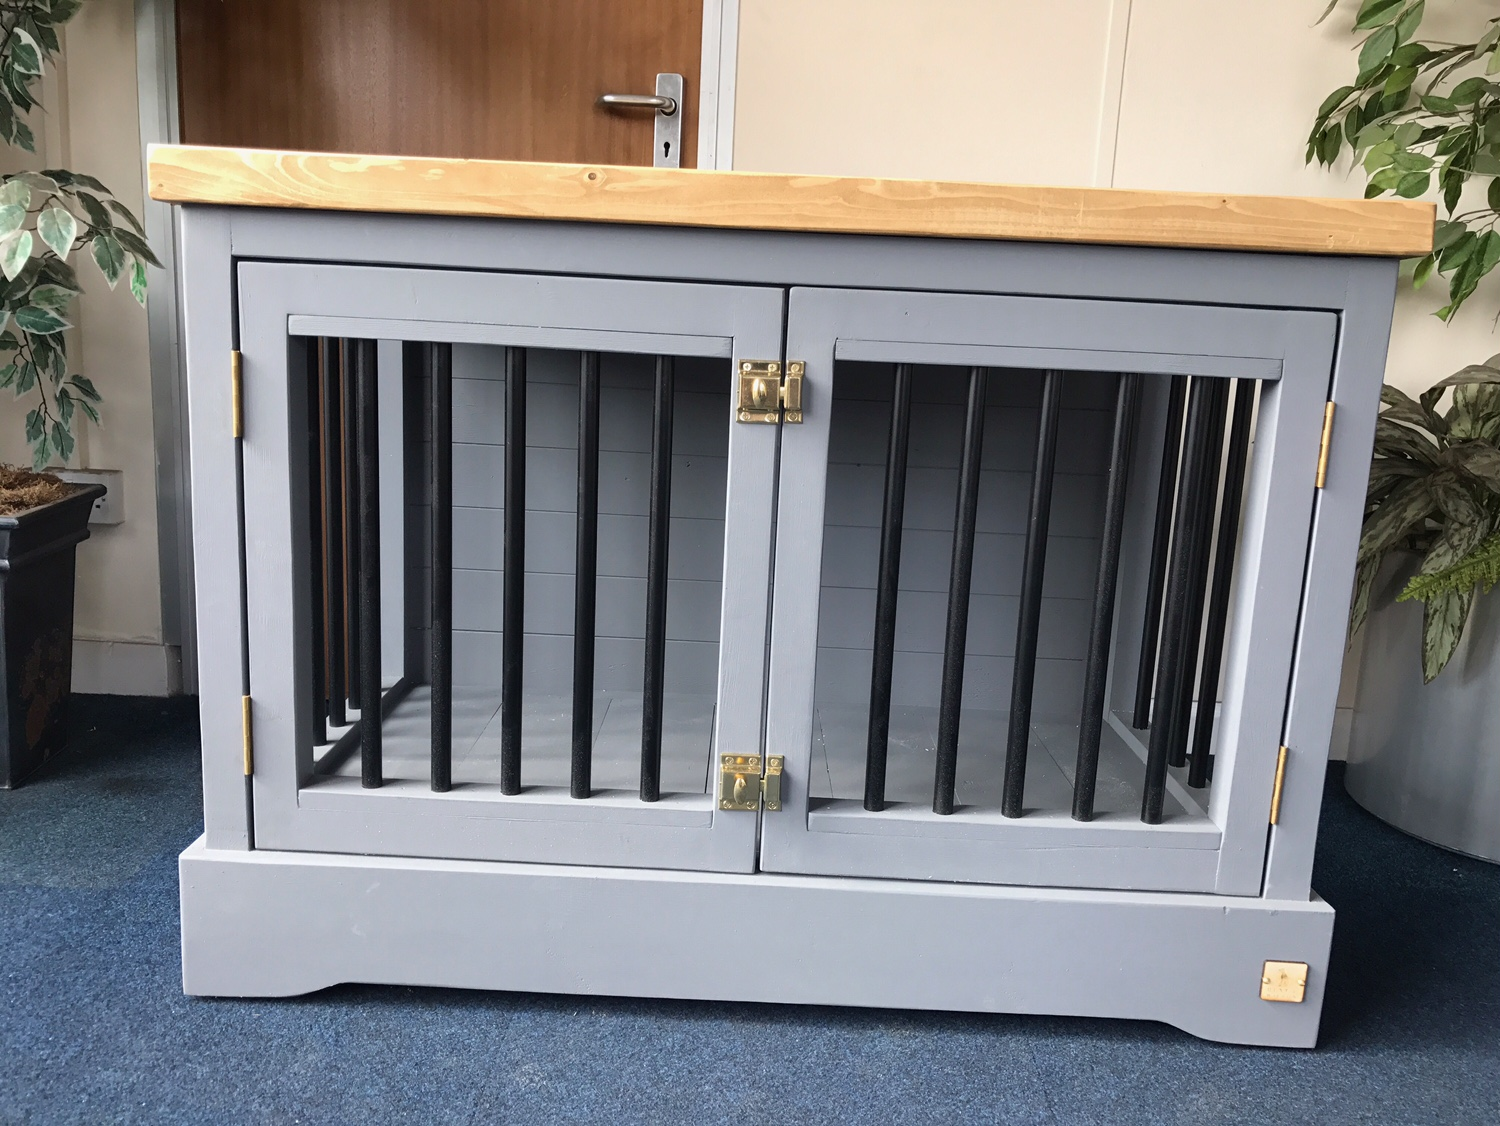 Luxury Dog Crate End Table Dog Crate Luxury Dog Beds Pet